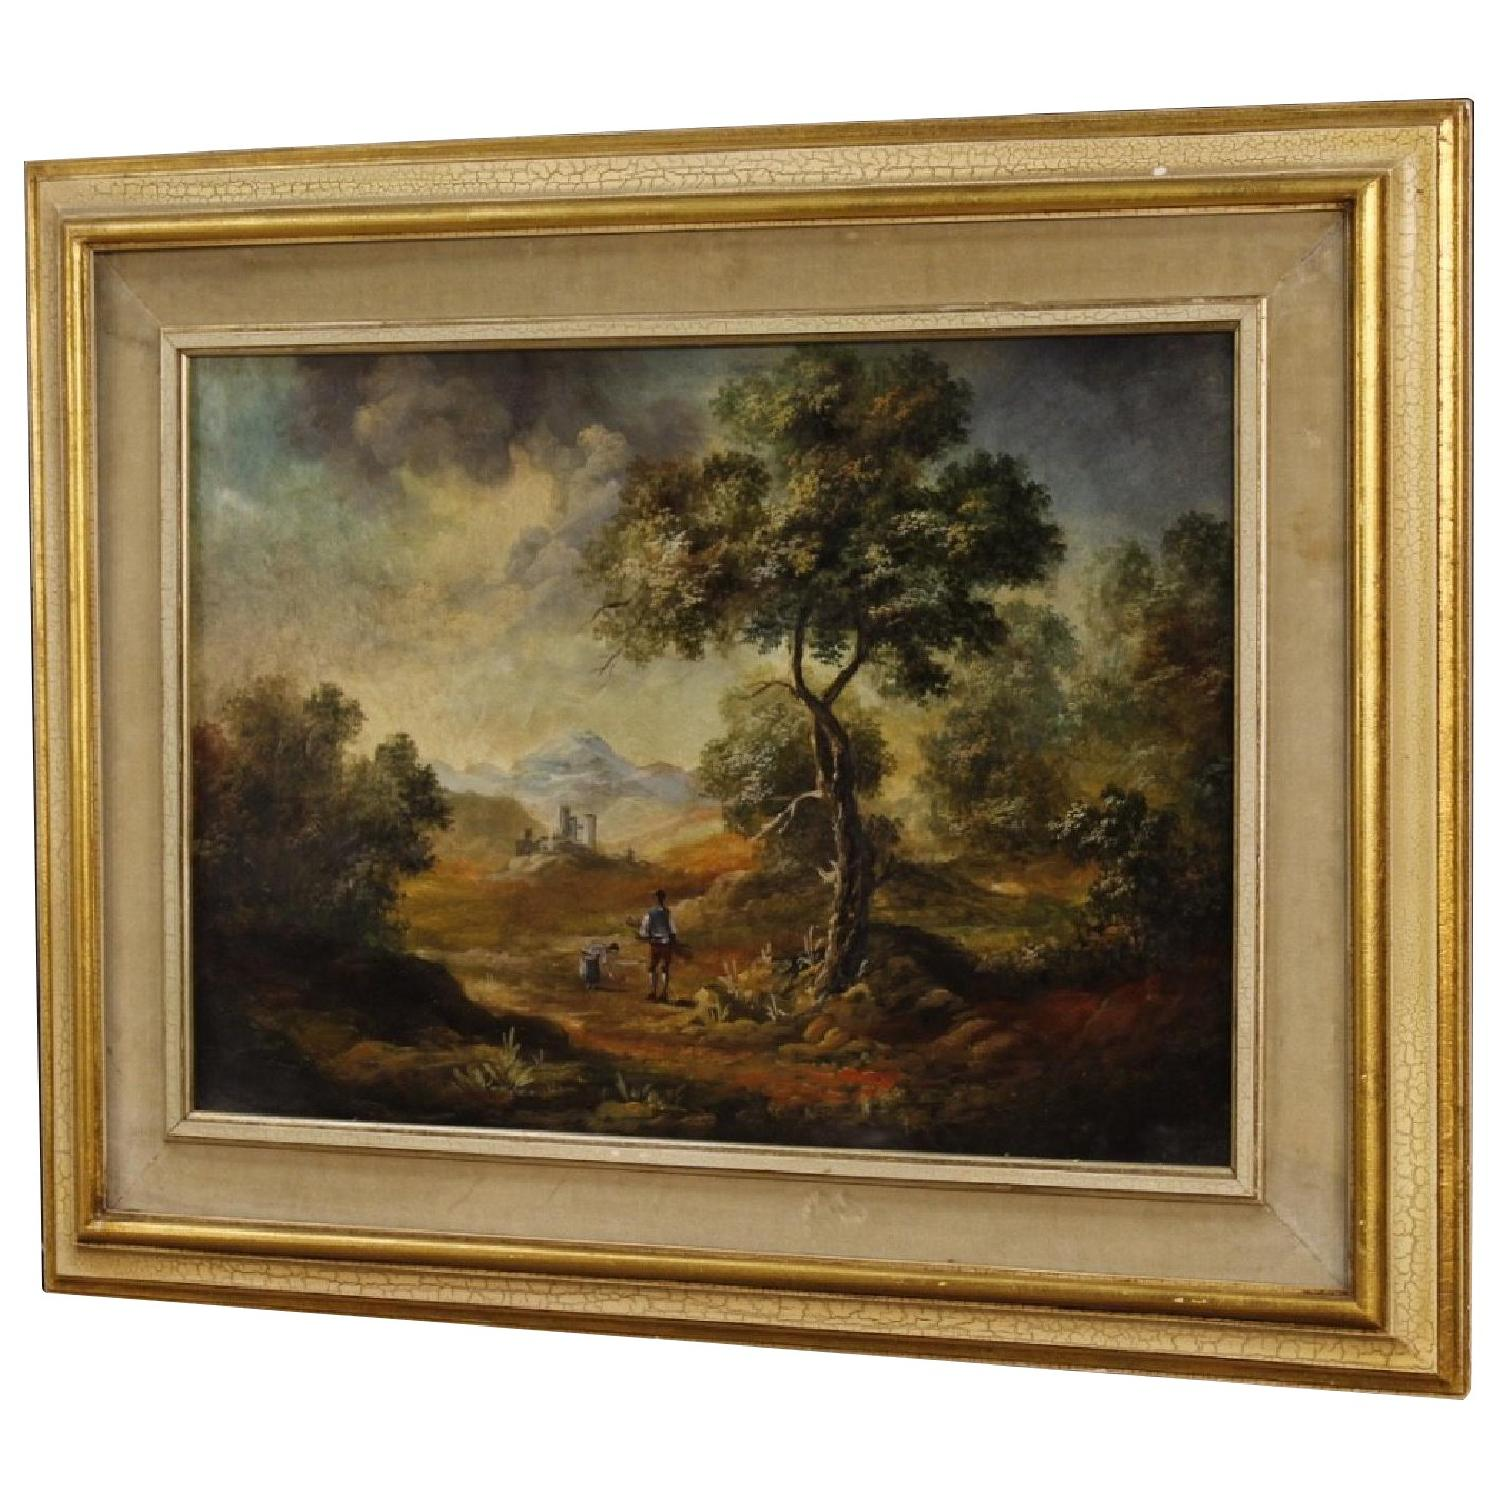 Italian Landscape w/ Characters Painting Oil On Canvas